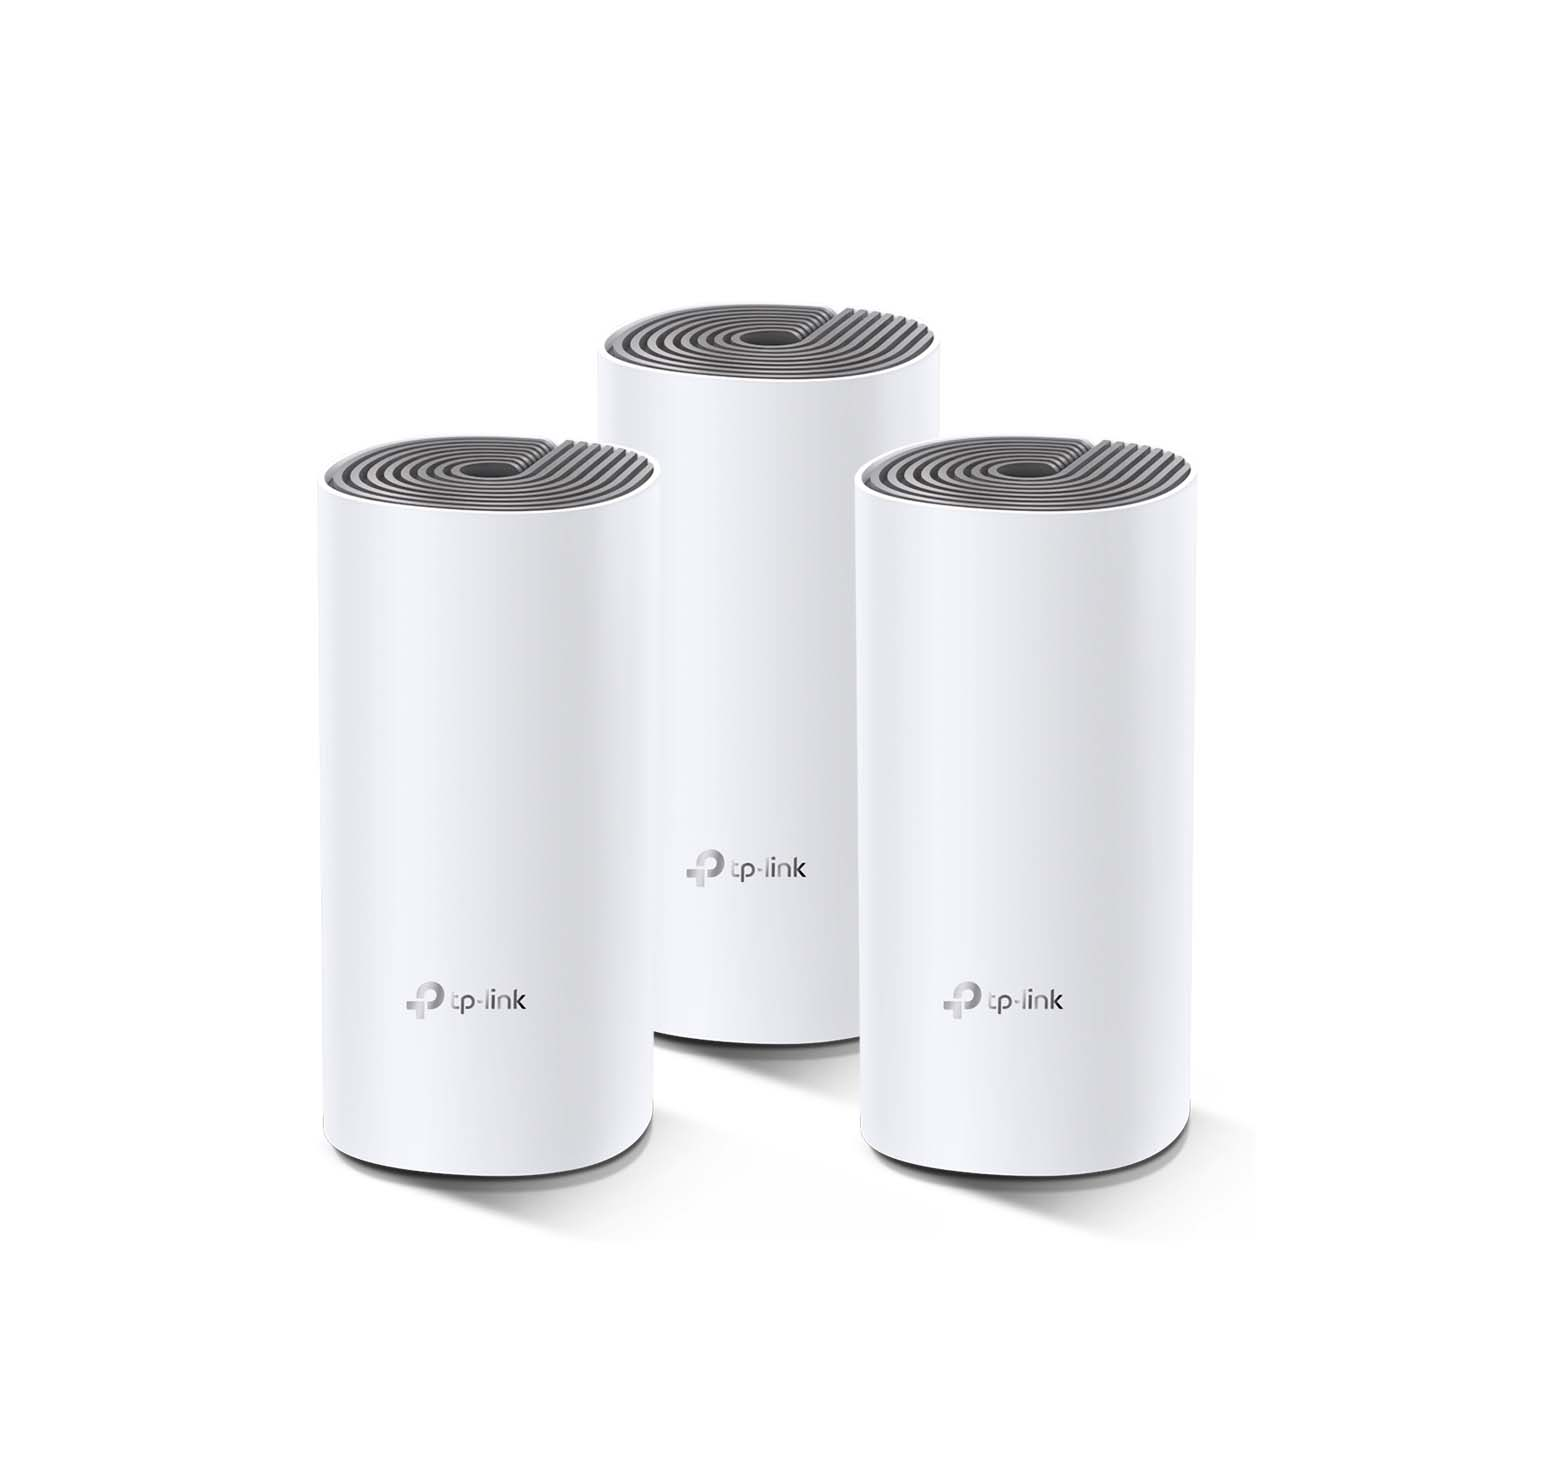 TP-Link Deco E4 WiFi Router AC1200, Dual Band, Mesh, RJ45 100Mb/s 3-Pack